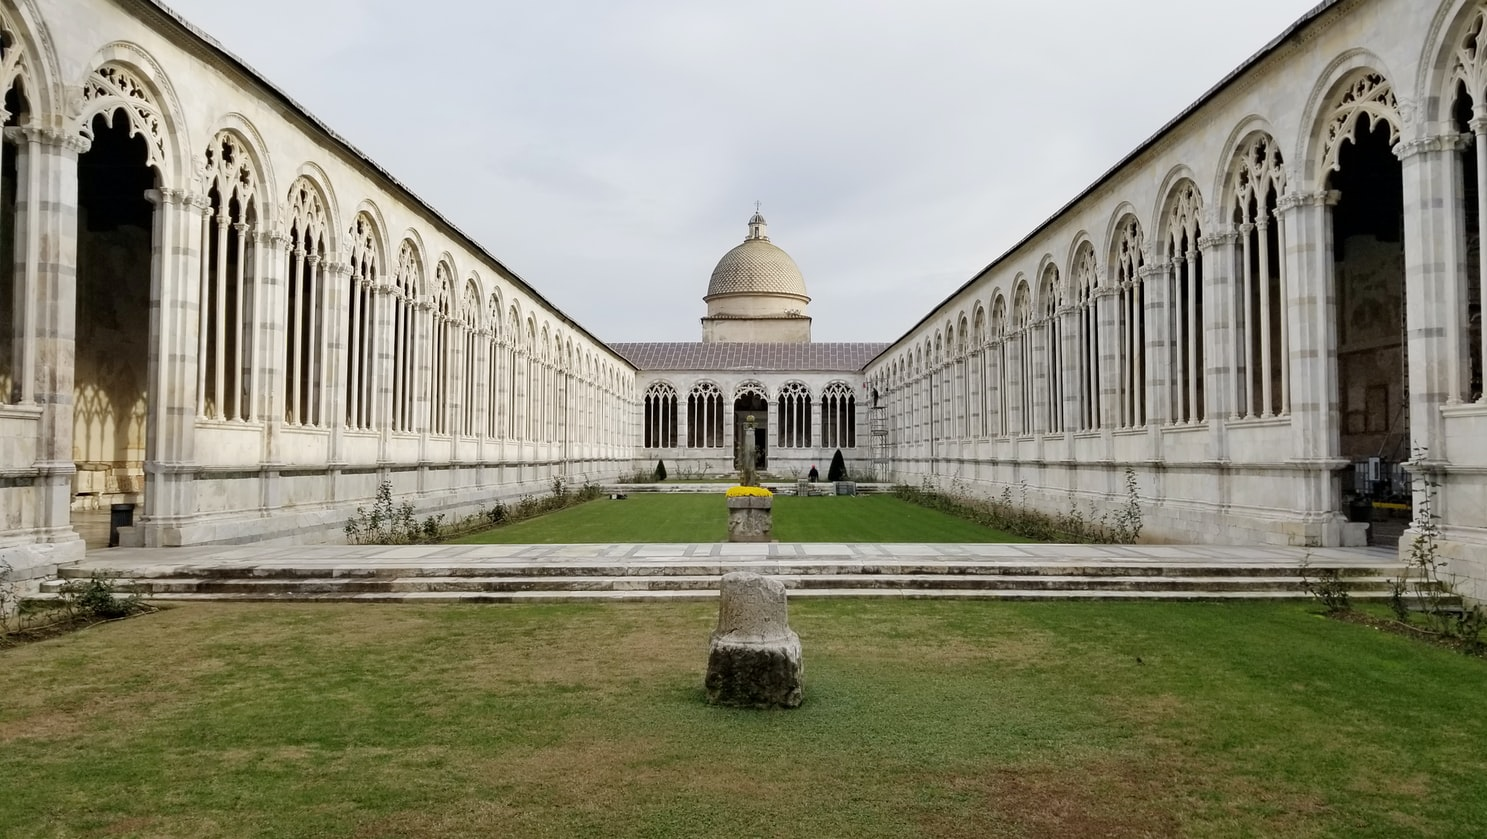 a classical building in Pisa, Italy